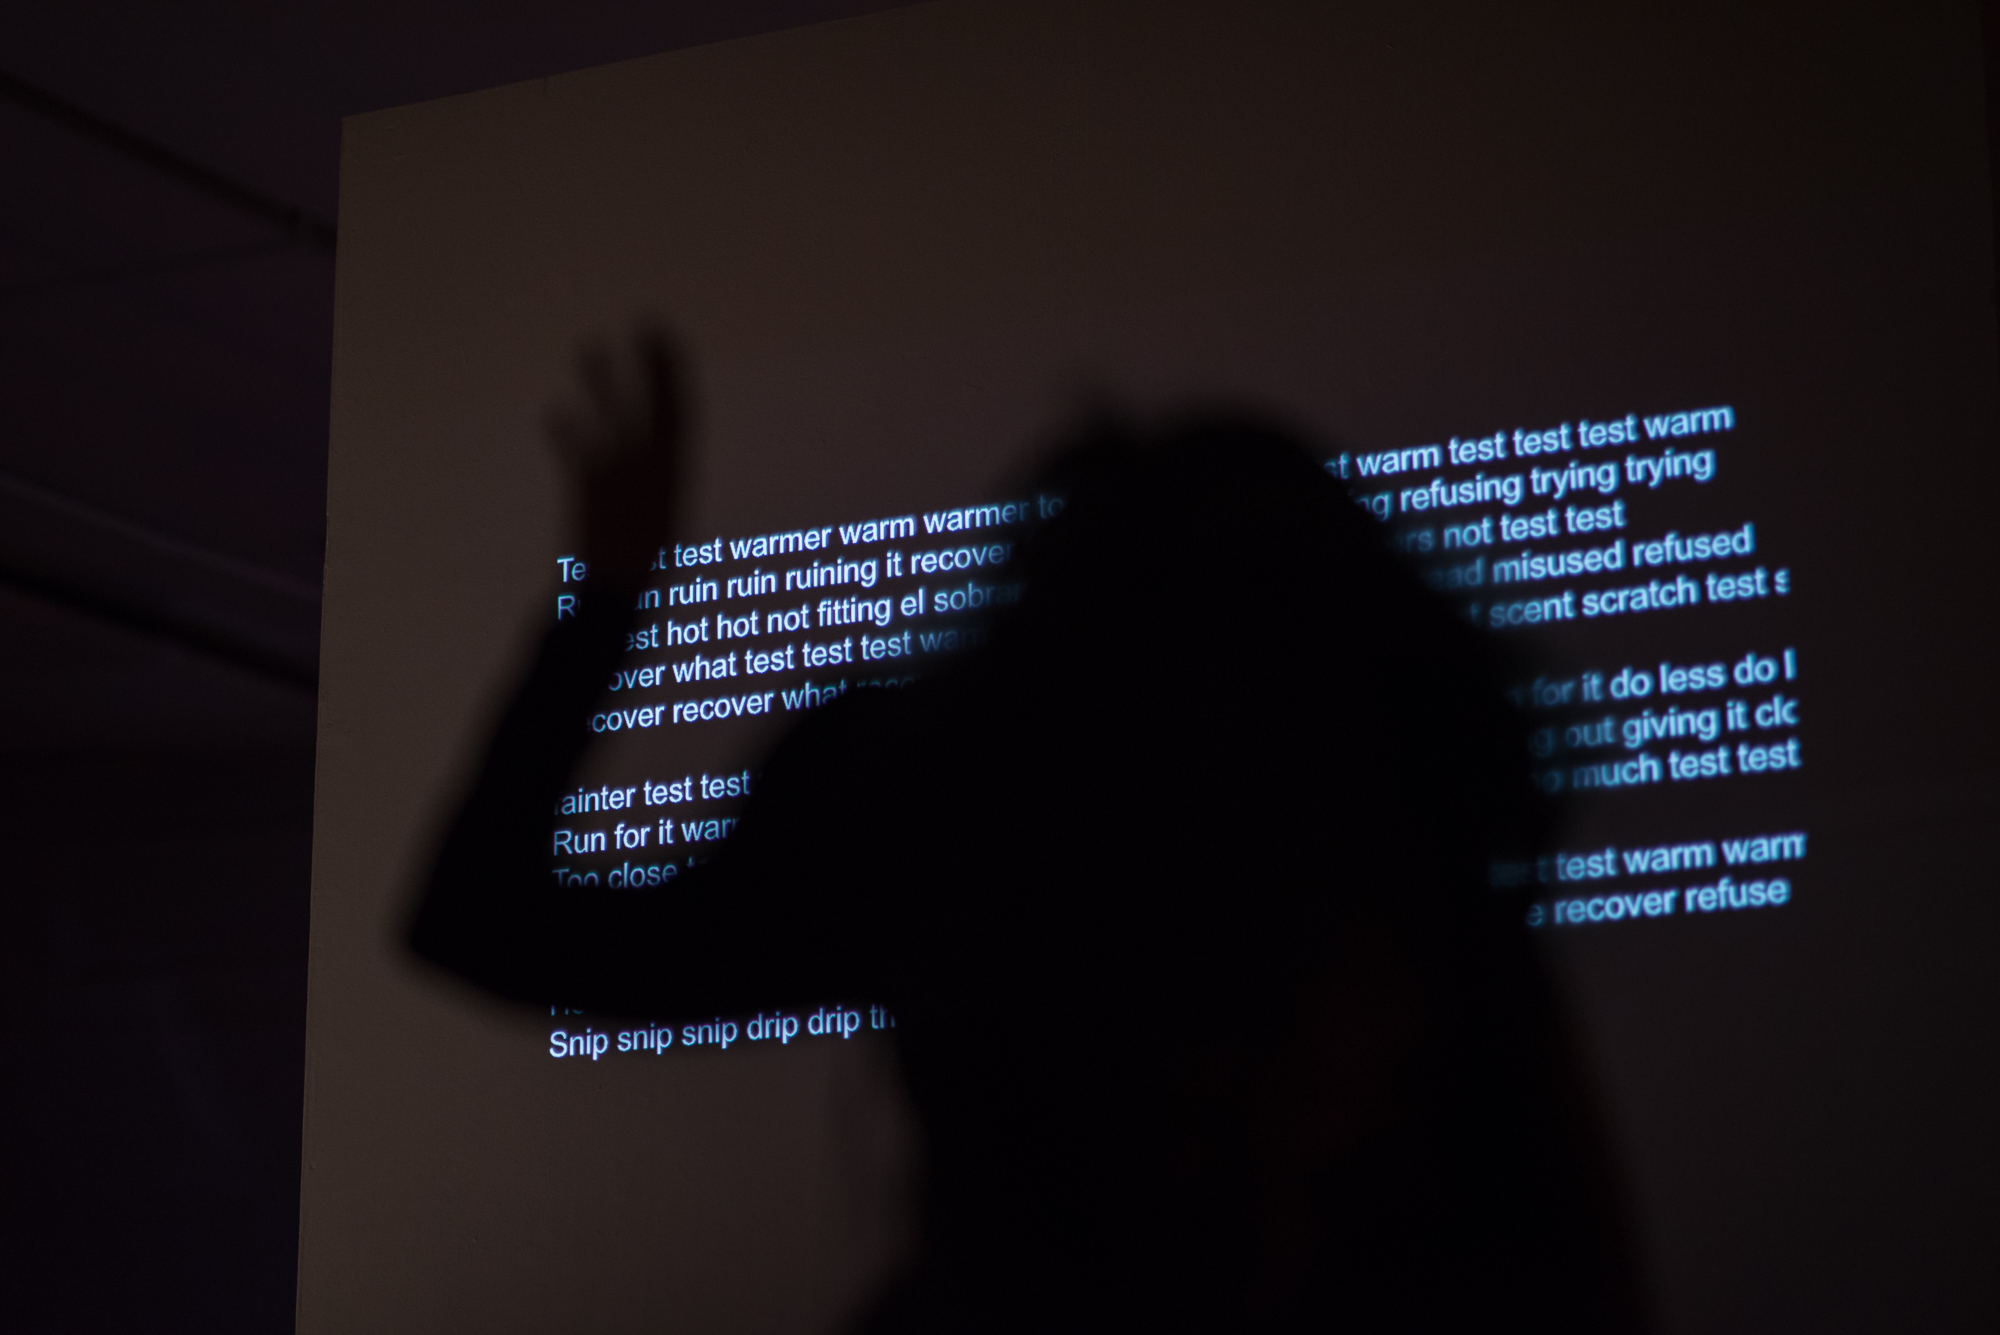 Projected text by Julie Tolentino Photo by Hillary Goidell.